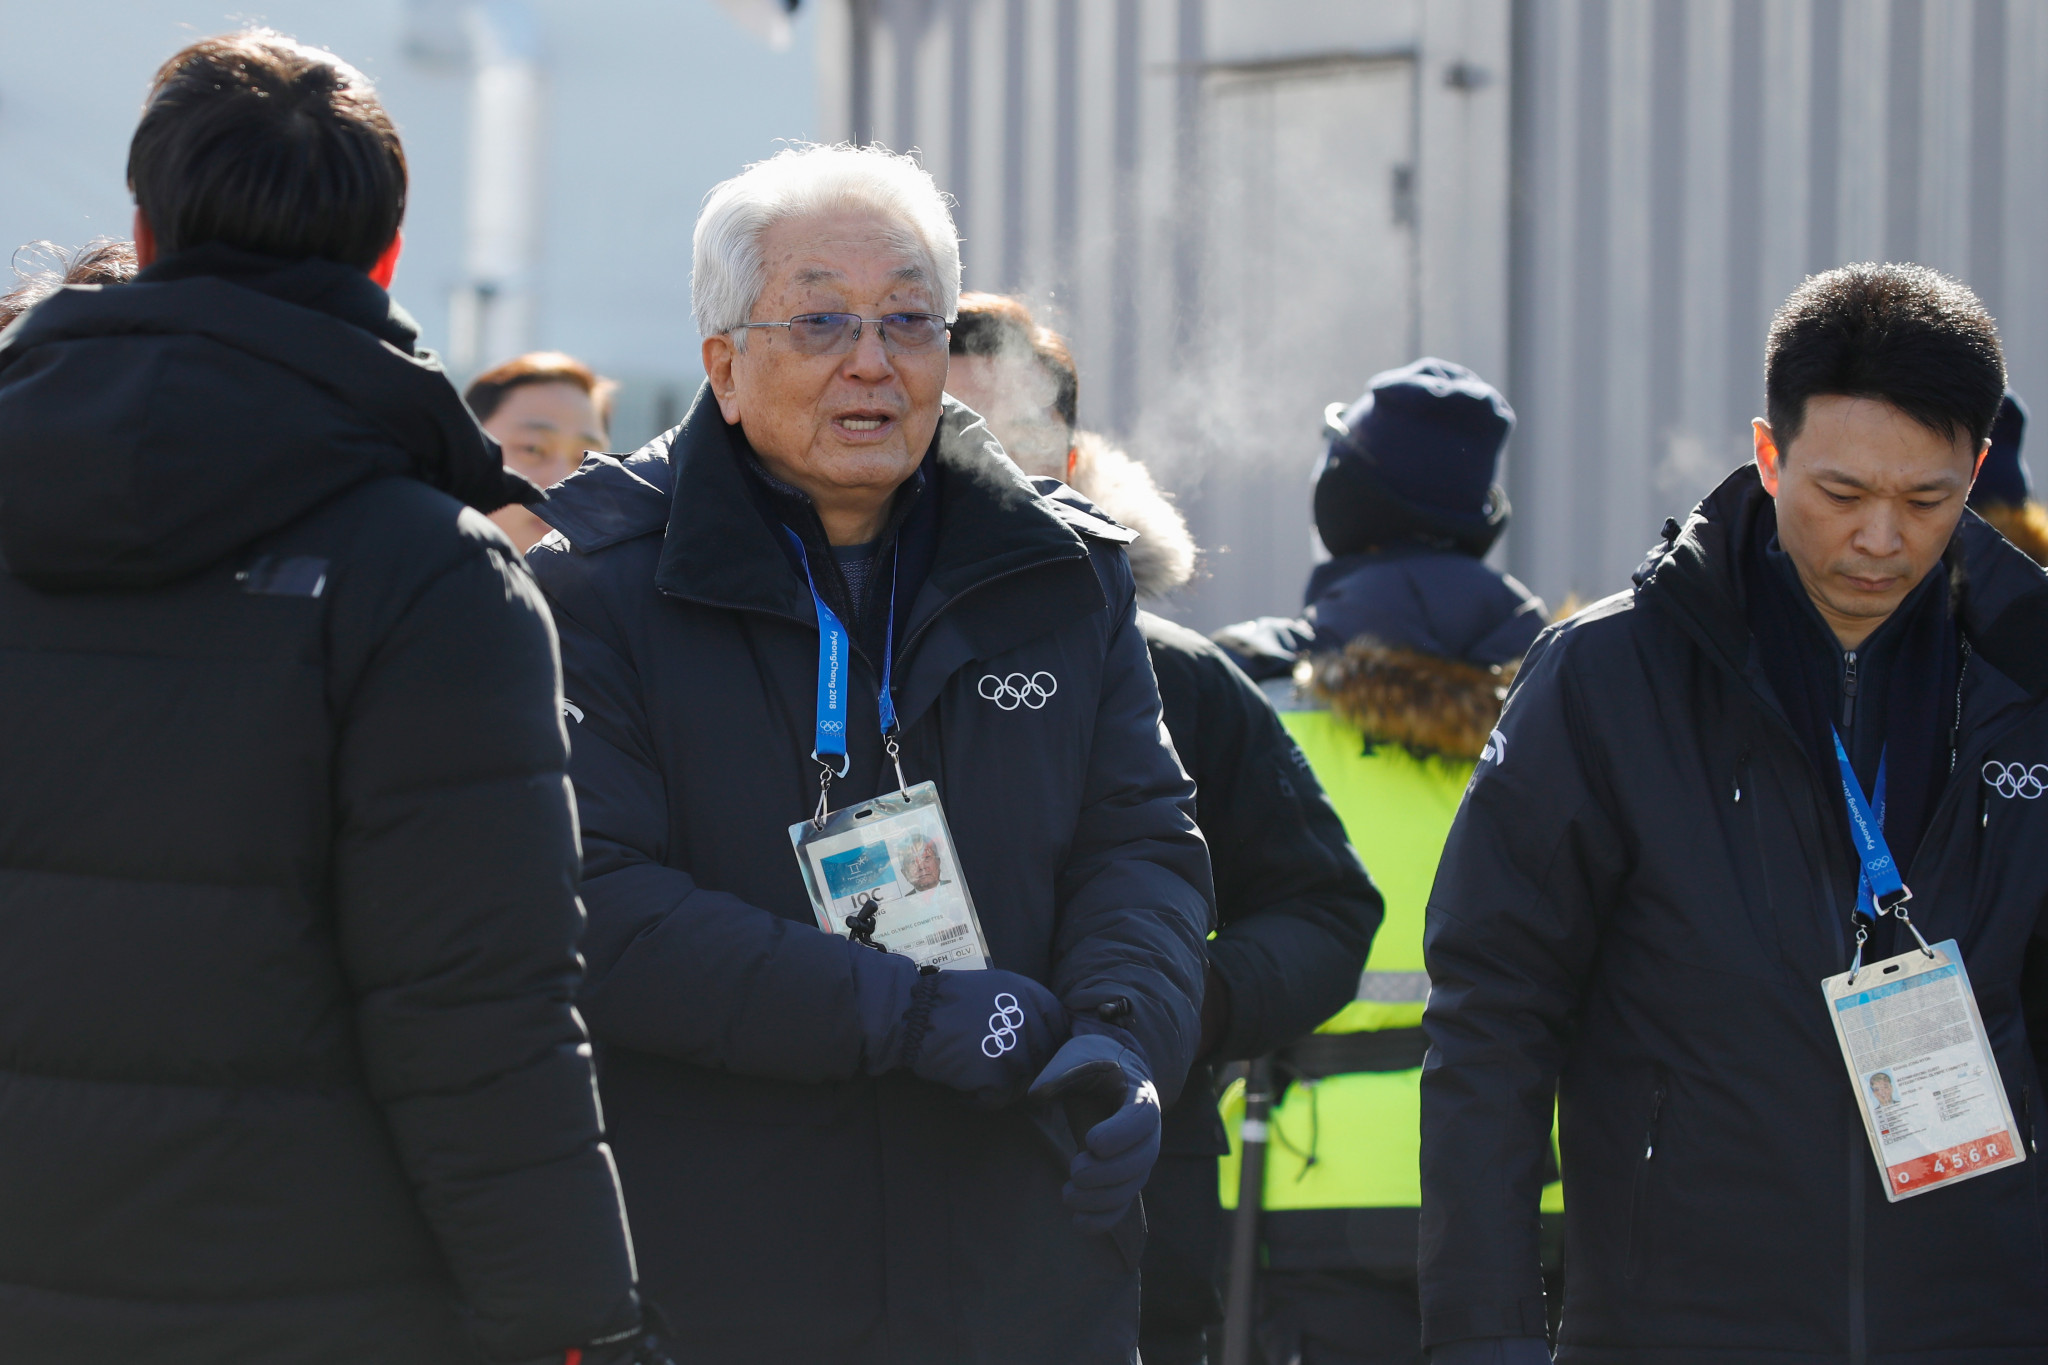 Chang Ung pictured attending the Pyeongchang 2018 Winter Olympic Games ©Getty Images